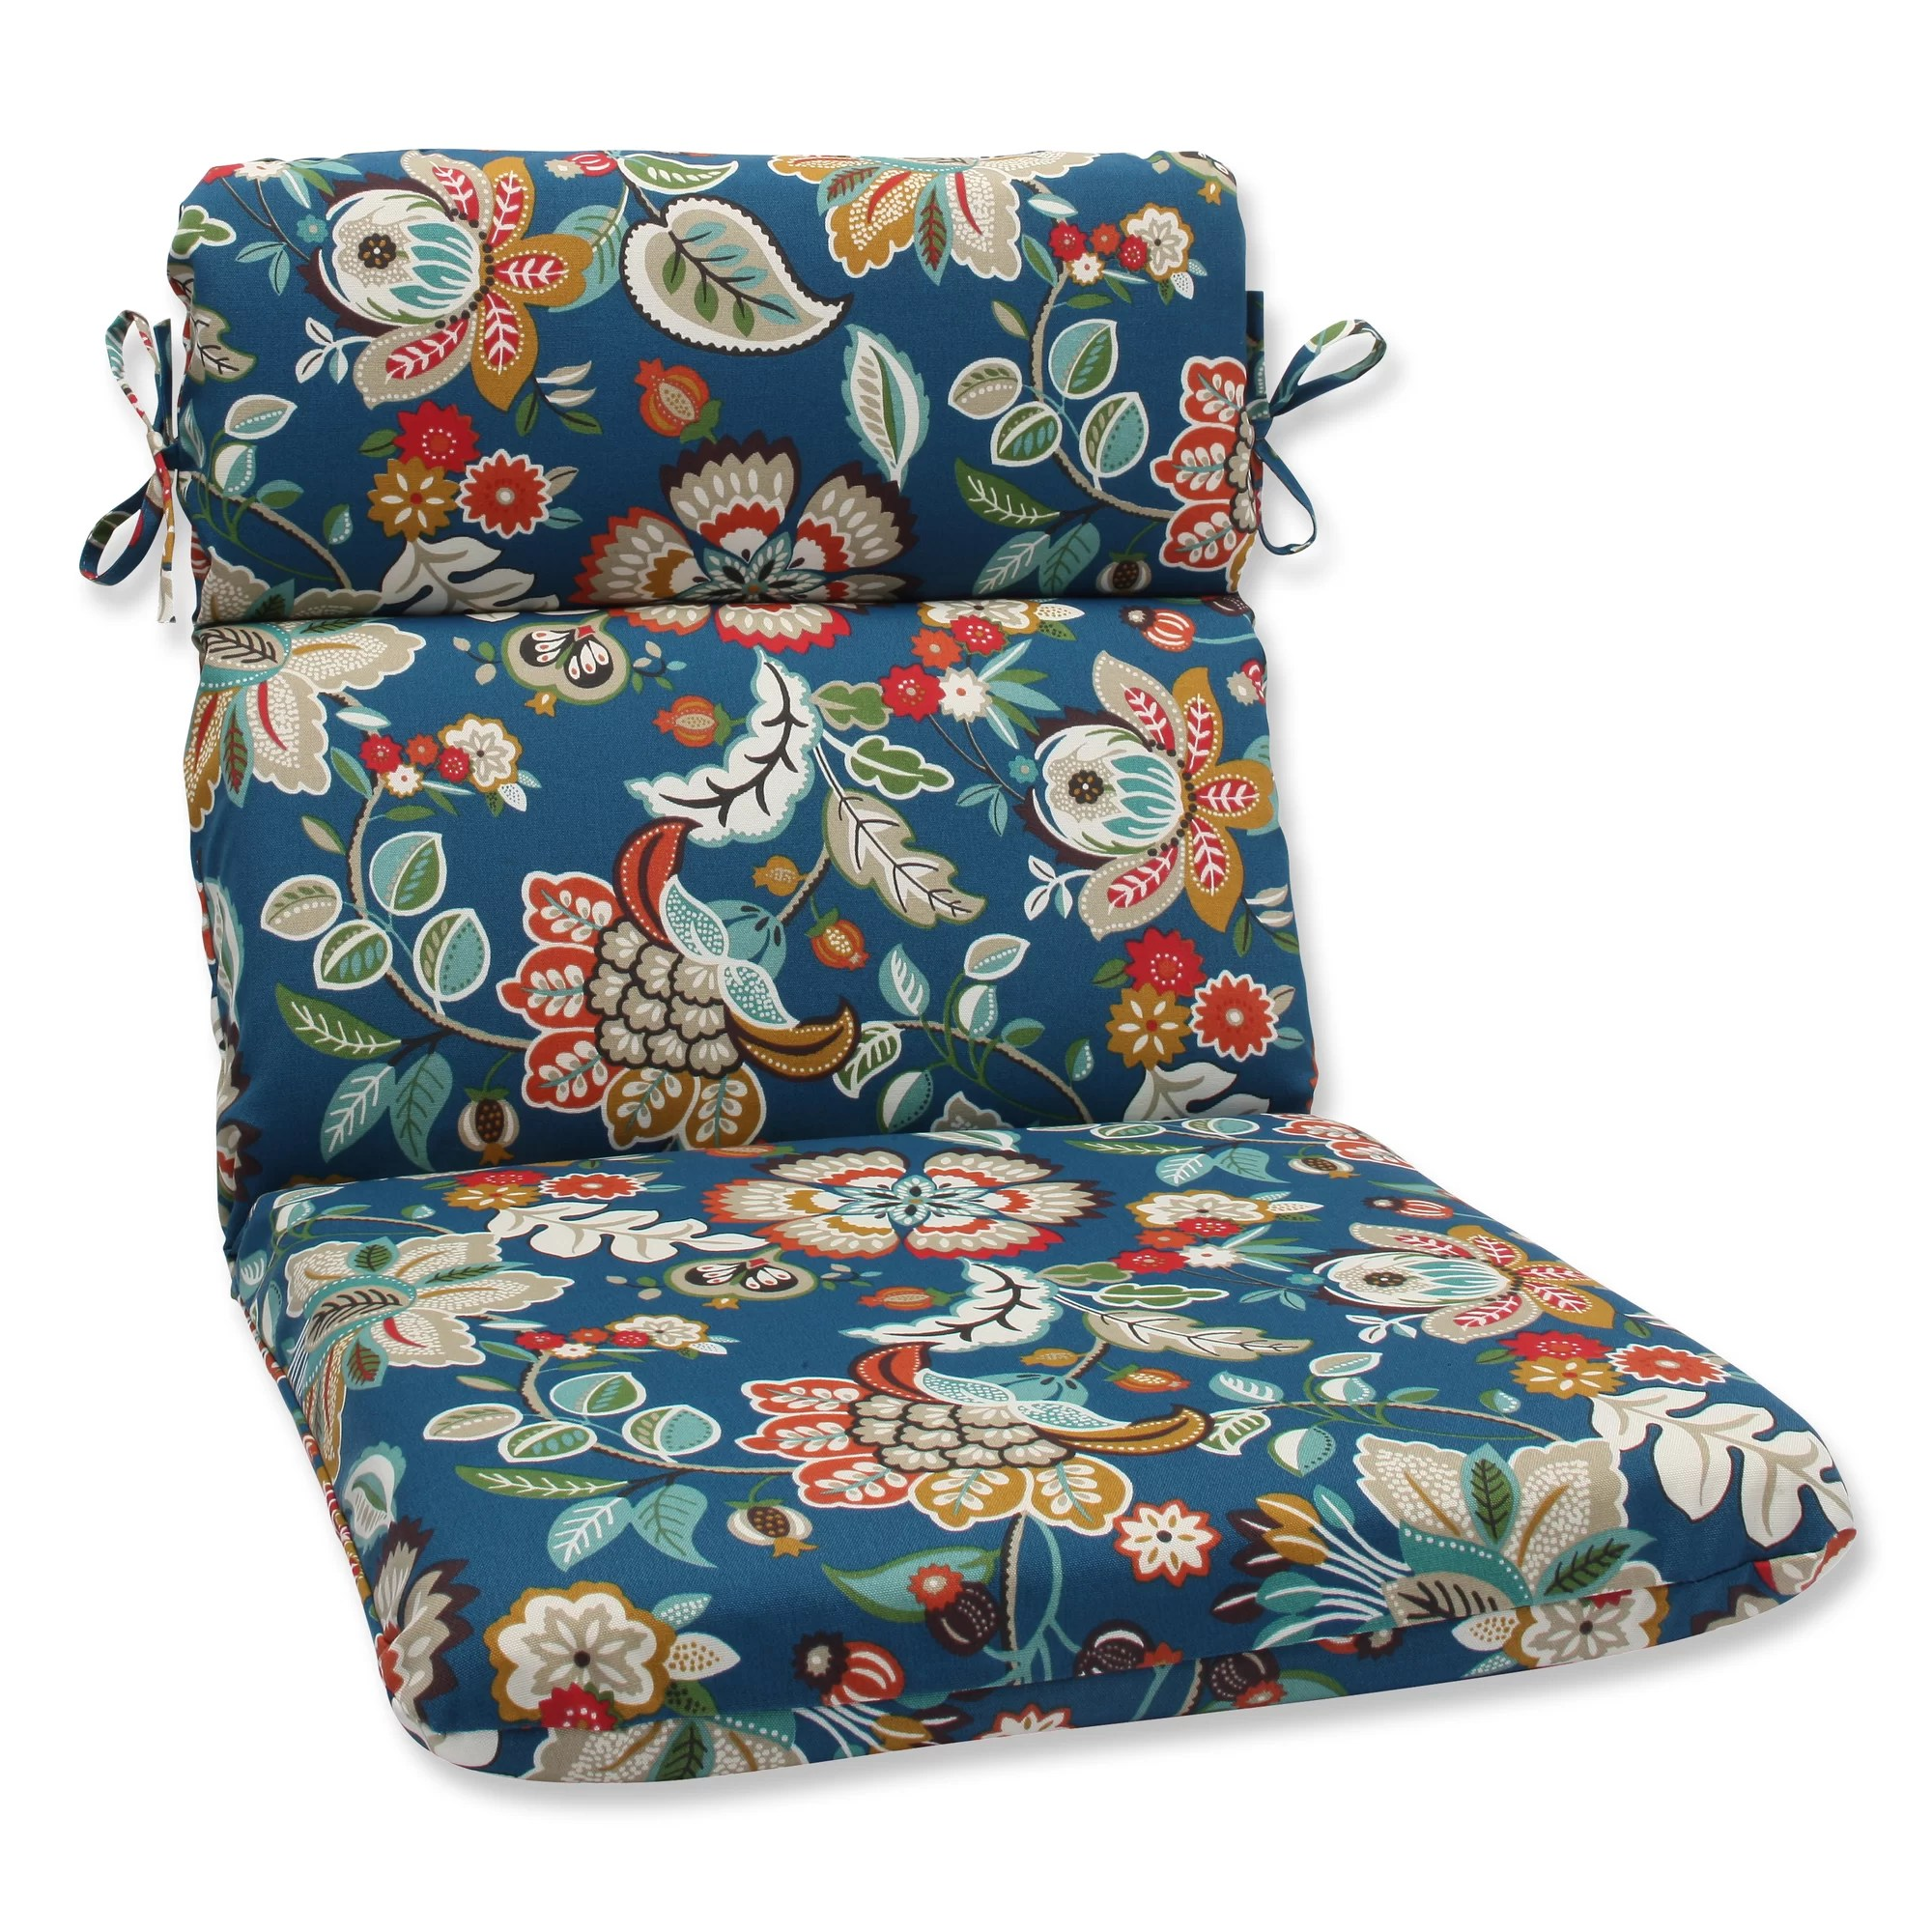 Outdoor Lounge Chair Cushions Pillow Perfect Telfair Peacock Outdoor Chaise Lounge